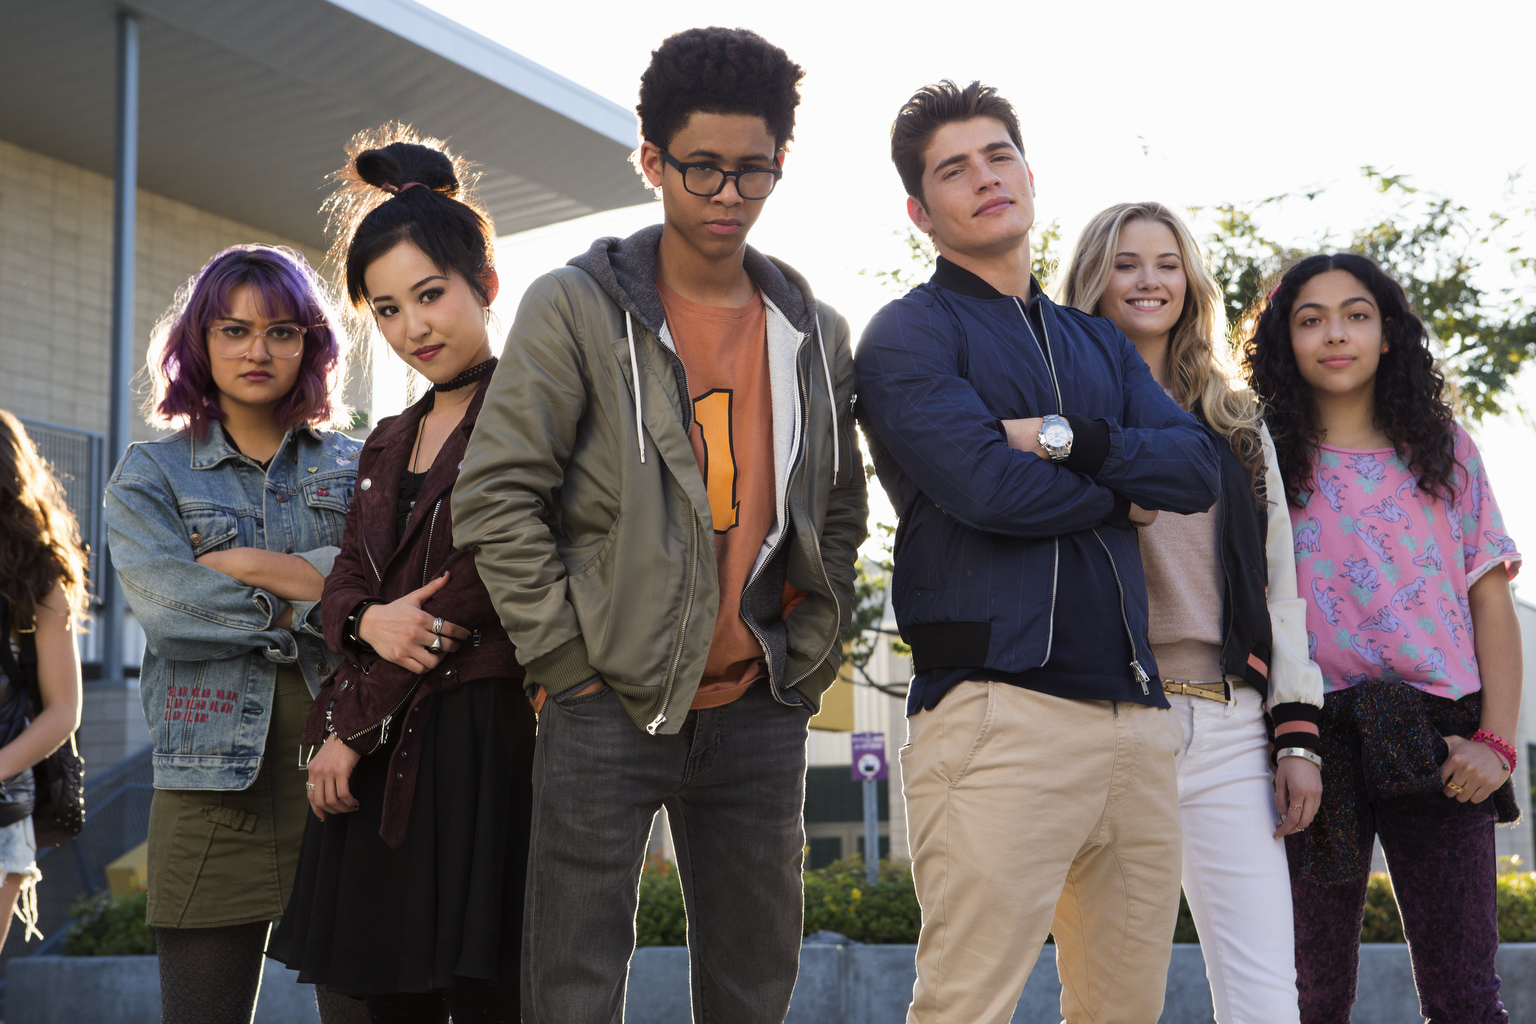 TRAILER: Here's Your First Look at the Young, Diverse Cast in Marvel's 'Runaways' Series